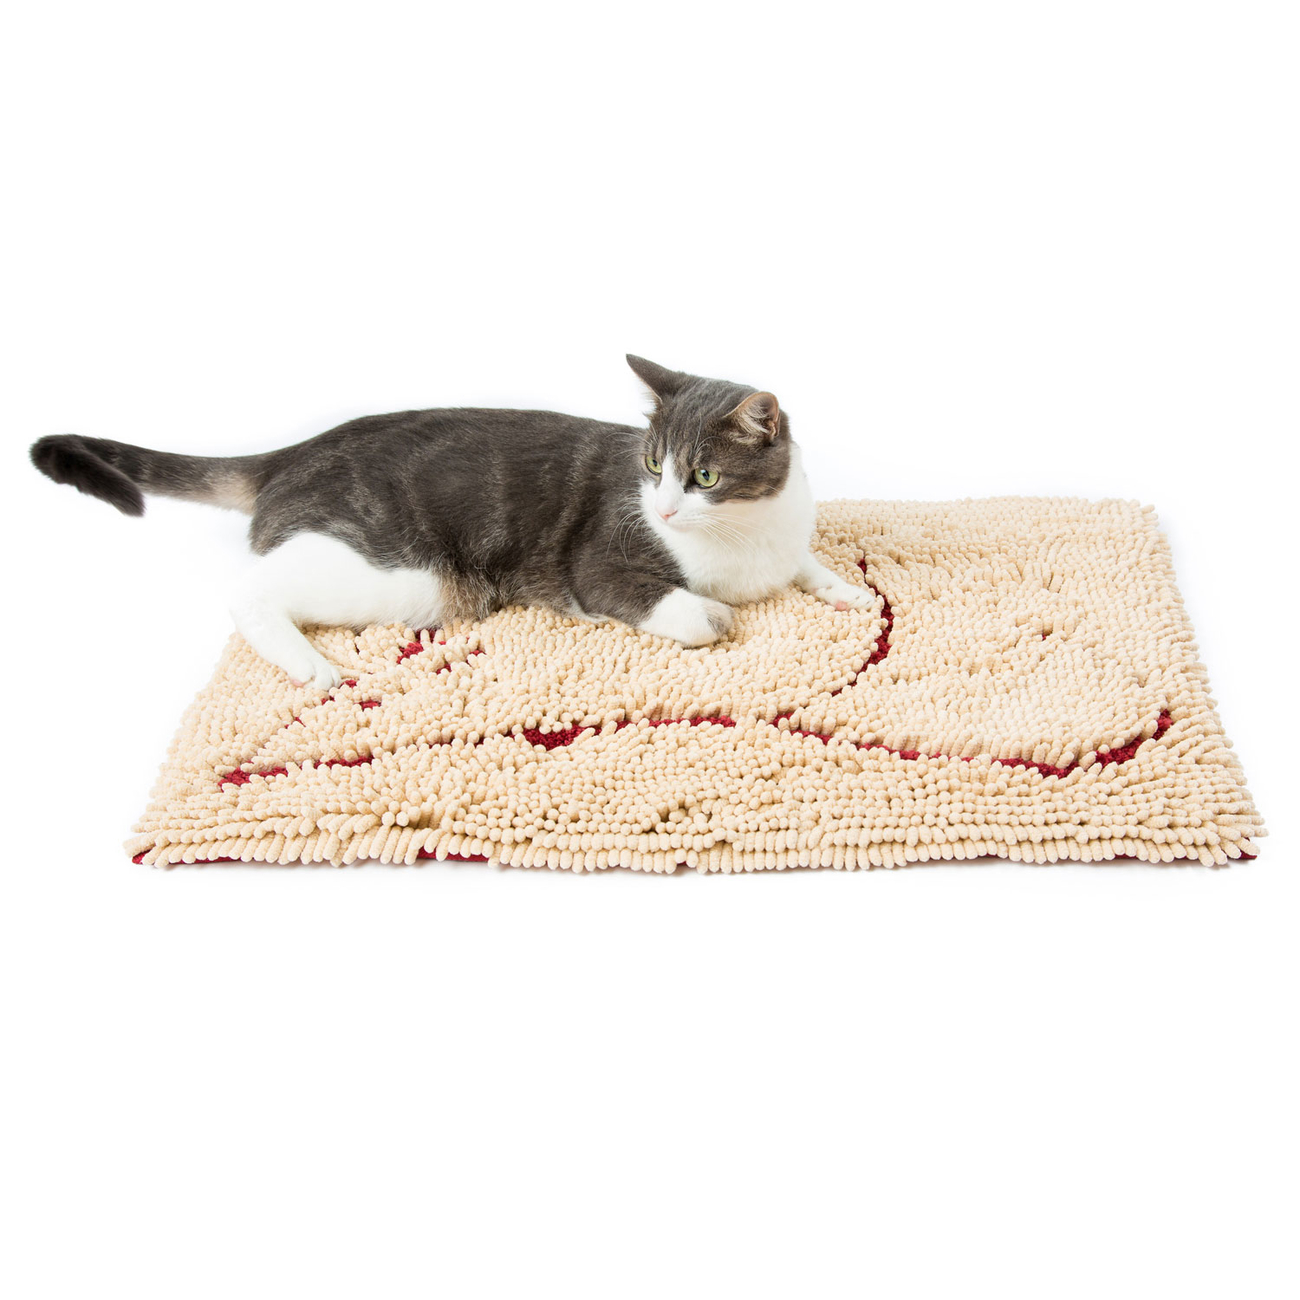 Dog Gone Smart Cat Litter Mat Katzenmatte, Bild 5